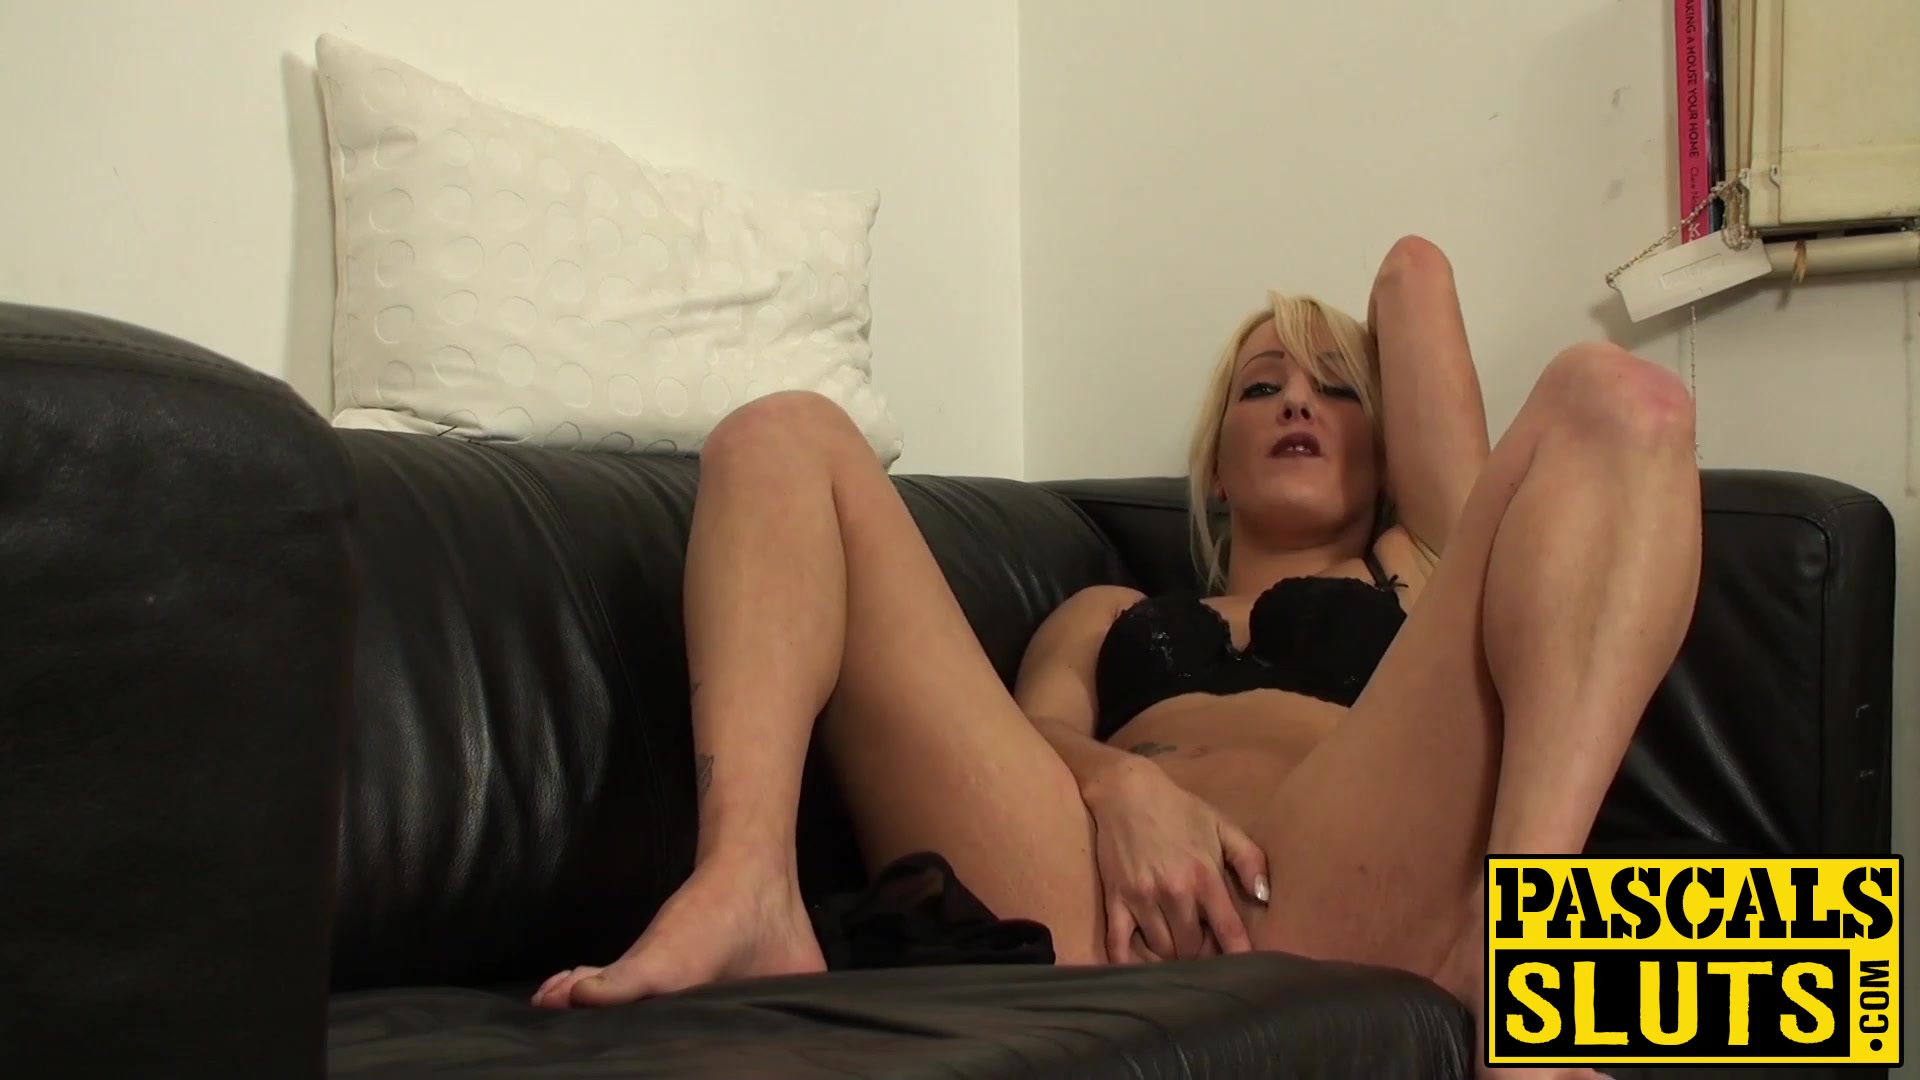 backroom casting couch busted Nude 18+